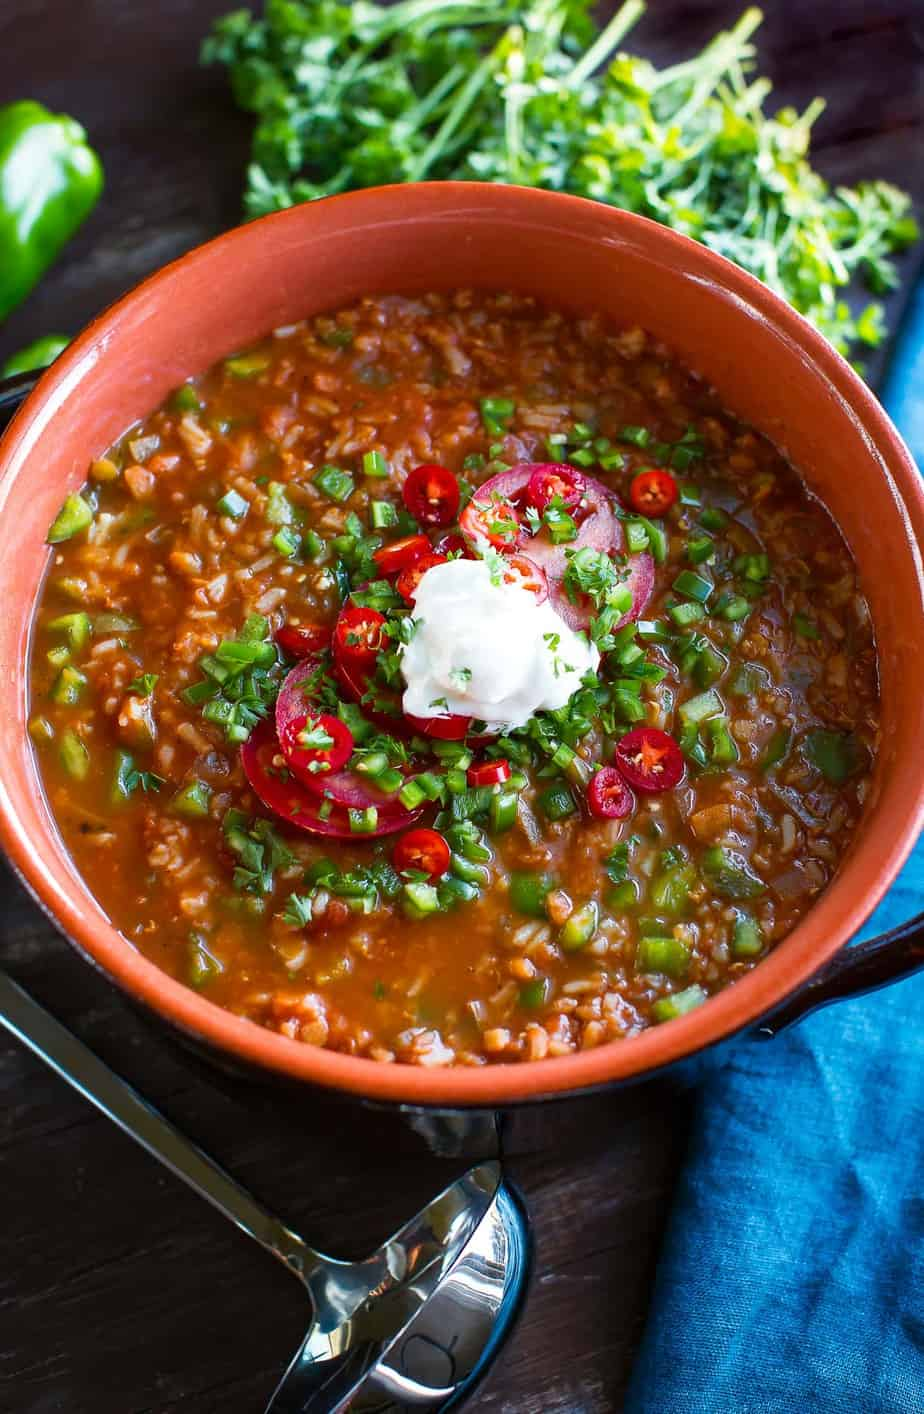 Vegan Stuffed Pepper Soup with Red Lentils